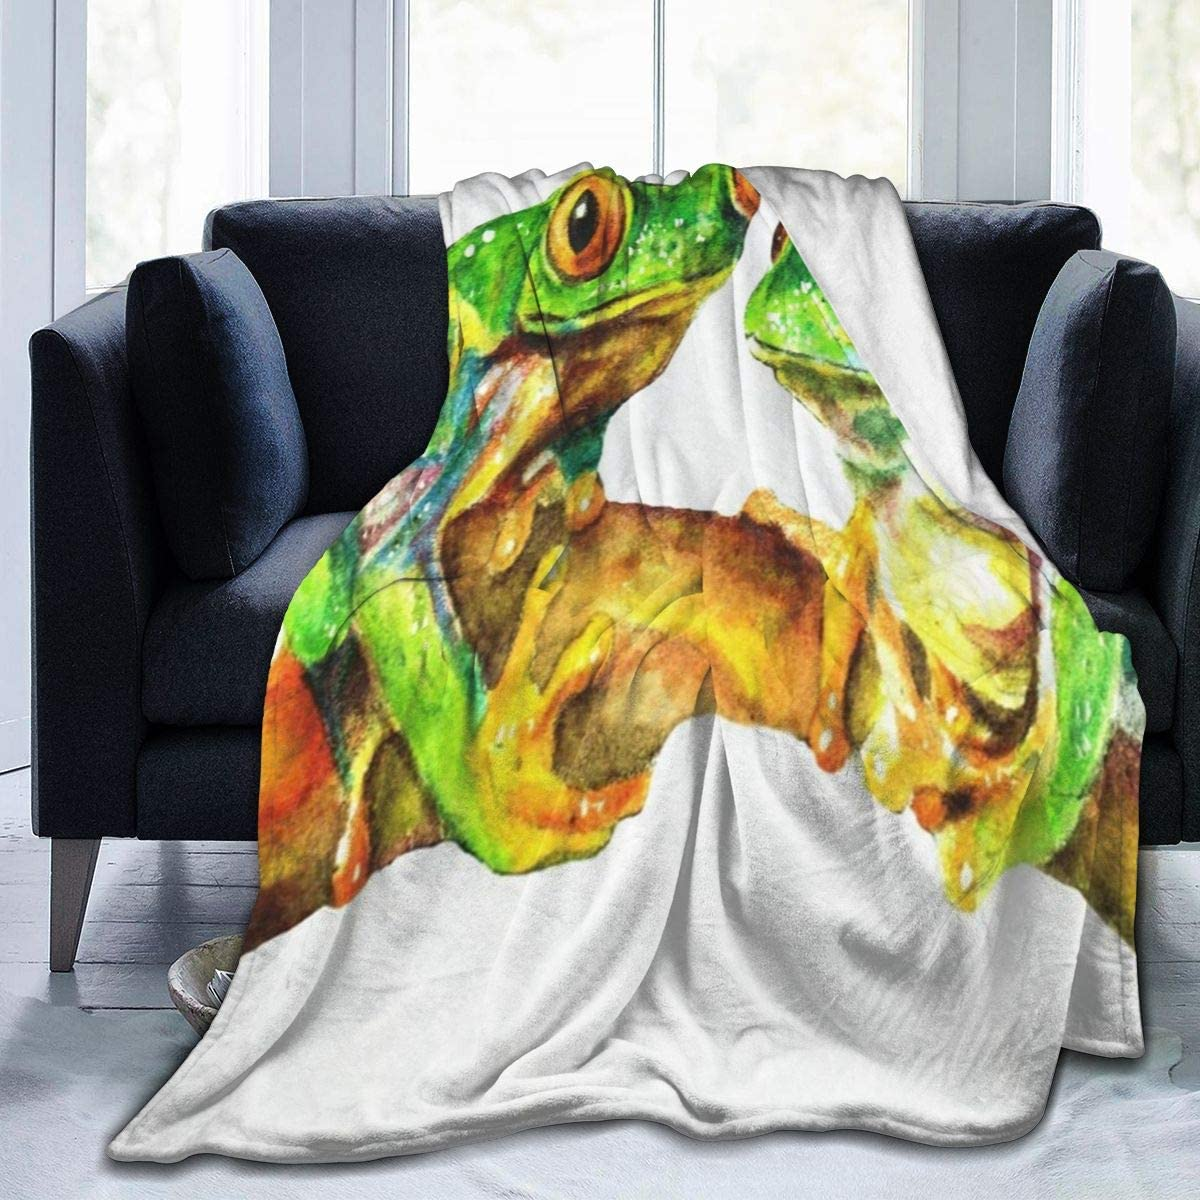 Fleece Plush Throw Blanket Comforter Watercolor Tropical Frog Fur Soft Cozy Warm Fluffy Lightweight Microfiber Fuzzy Kids Blankets for Bed Couch Sofa Fall Camp 50x40 Travel Chair Nap